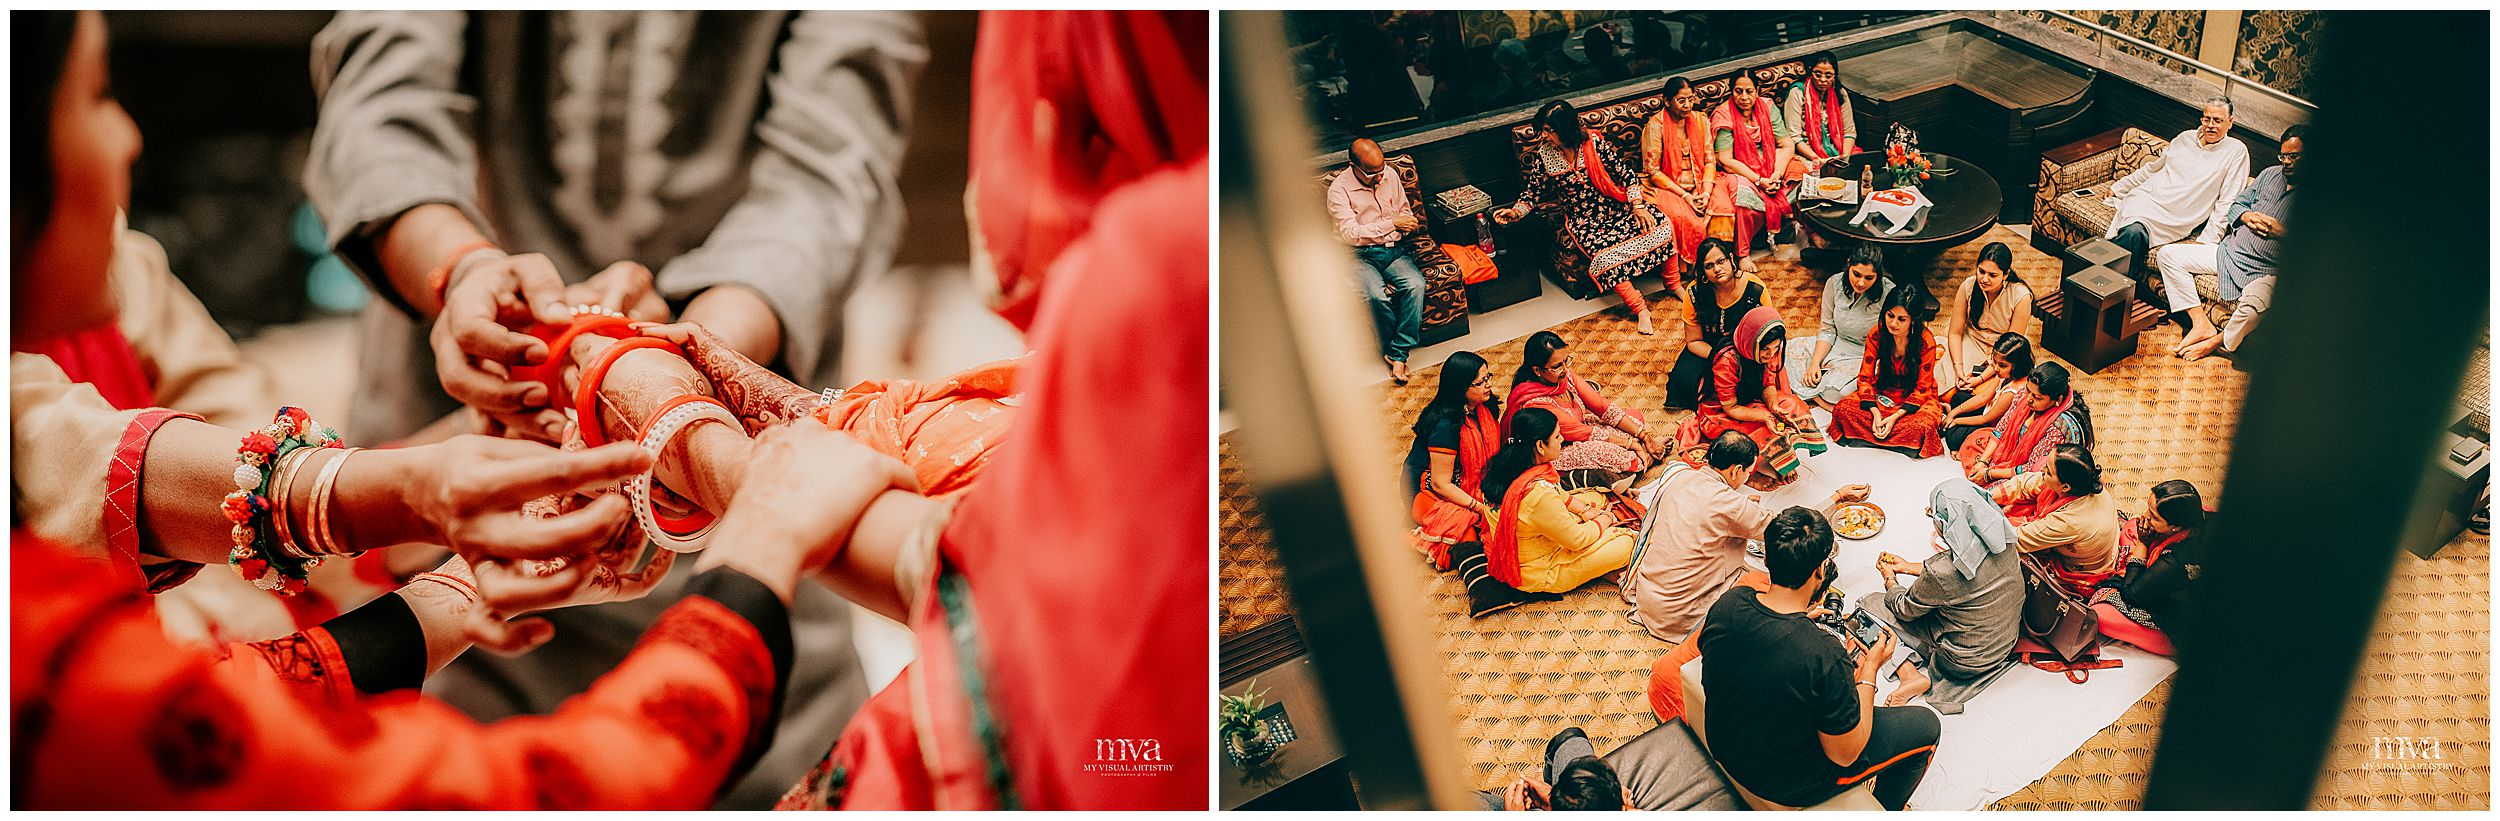 SIDDARTH_SAKSHI_MYVISUALARTISTRY_WEDDING_PHOTOGRAPHY_MVA_EROSHANGRILA_DELHI_0008.jpg